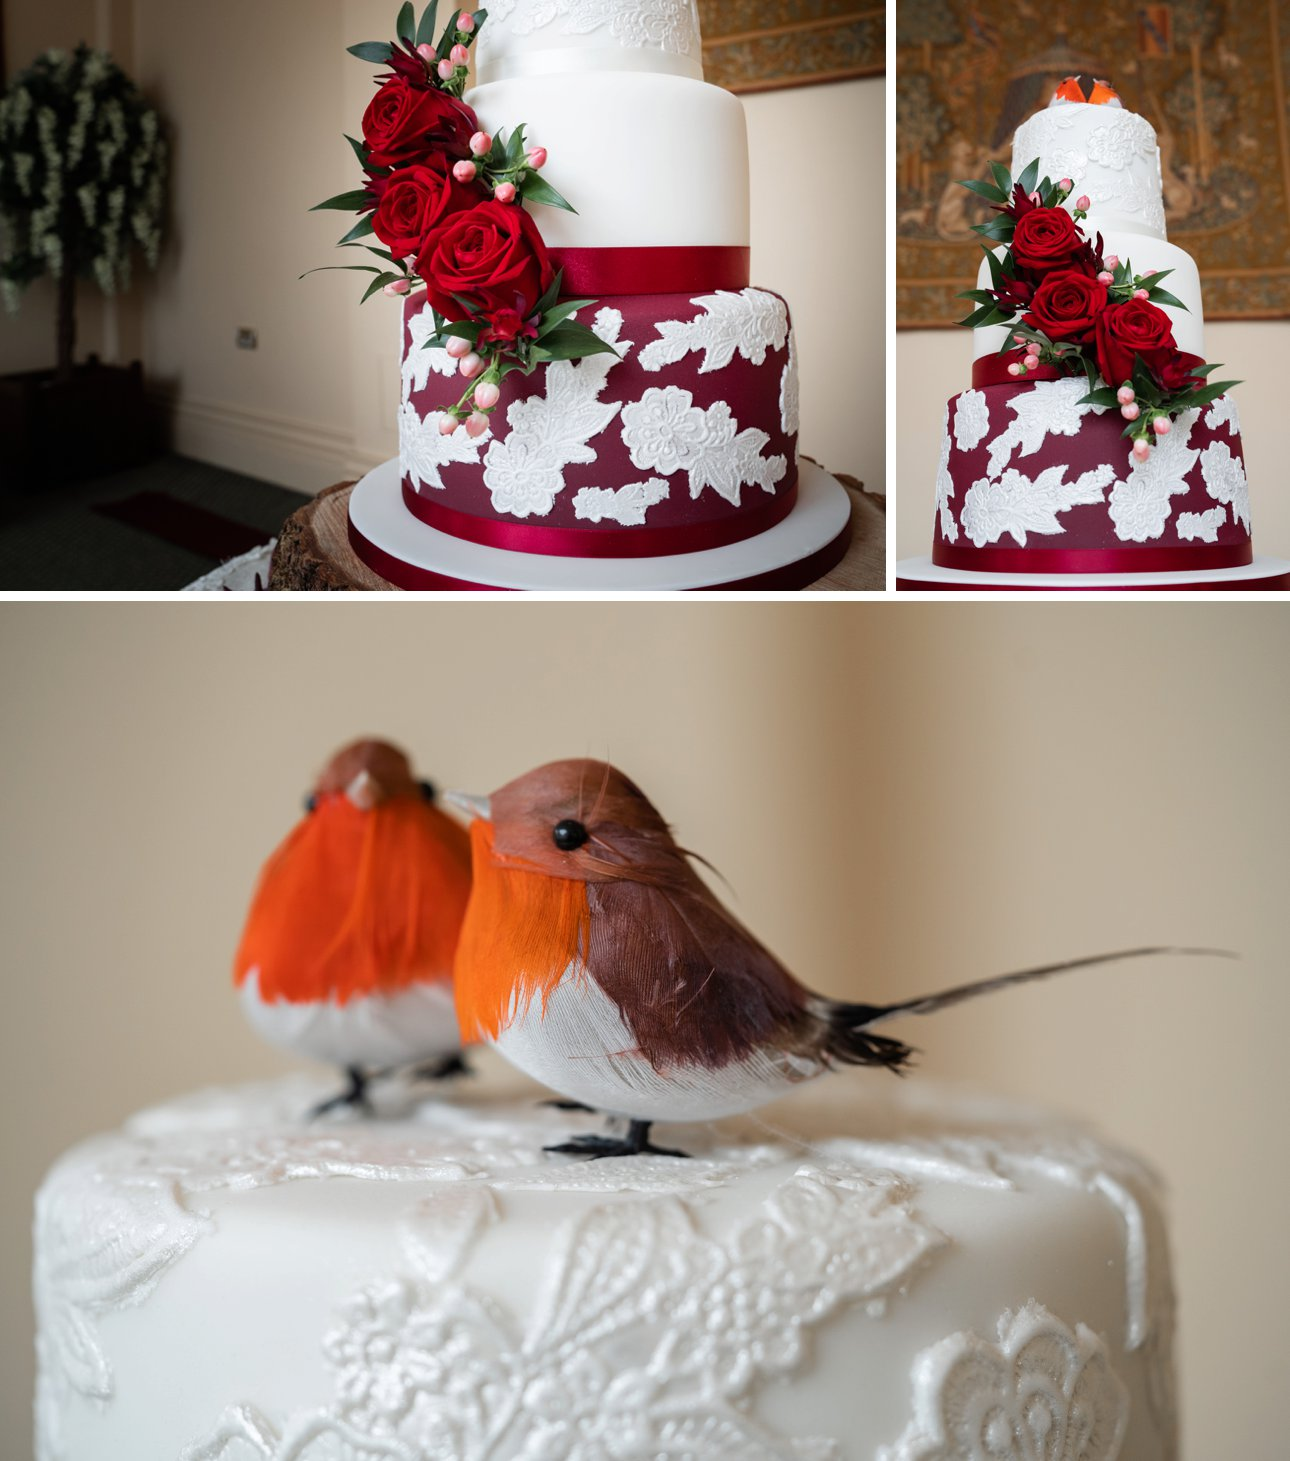 A red and white themed wedding cake by Sticky Fingers cake makers of Southend in Essex.